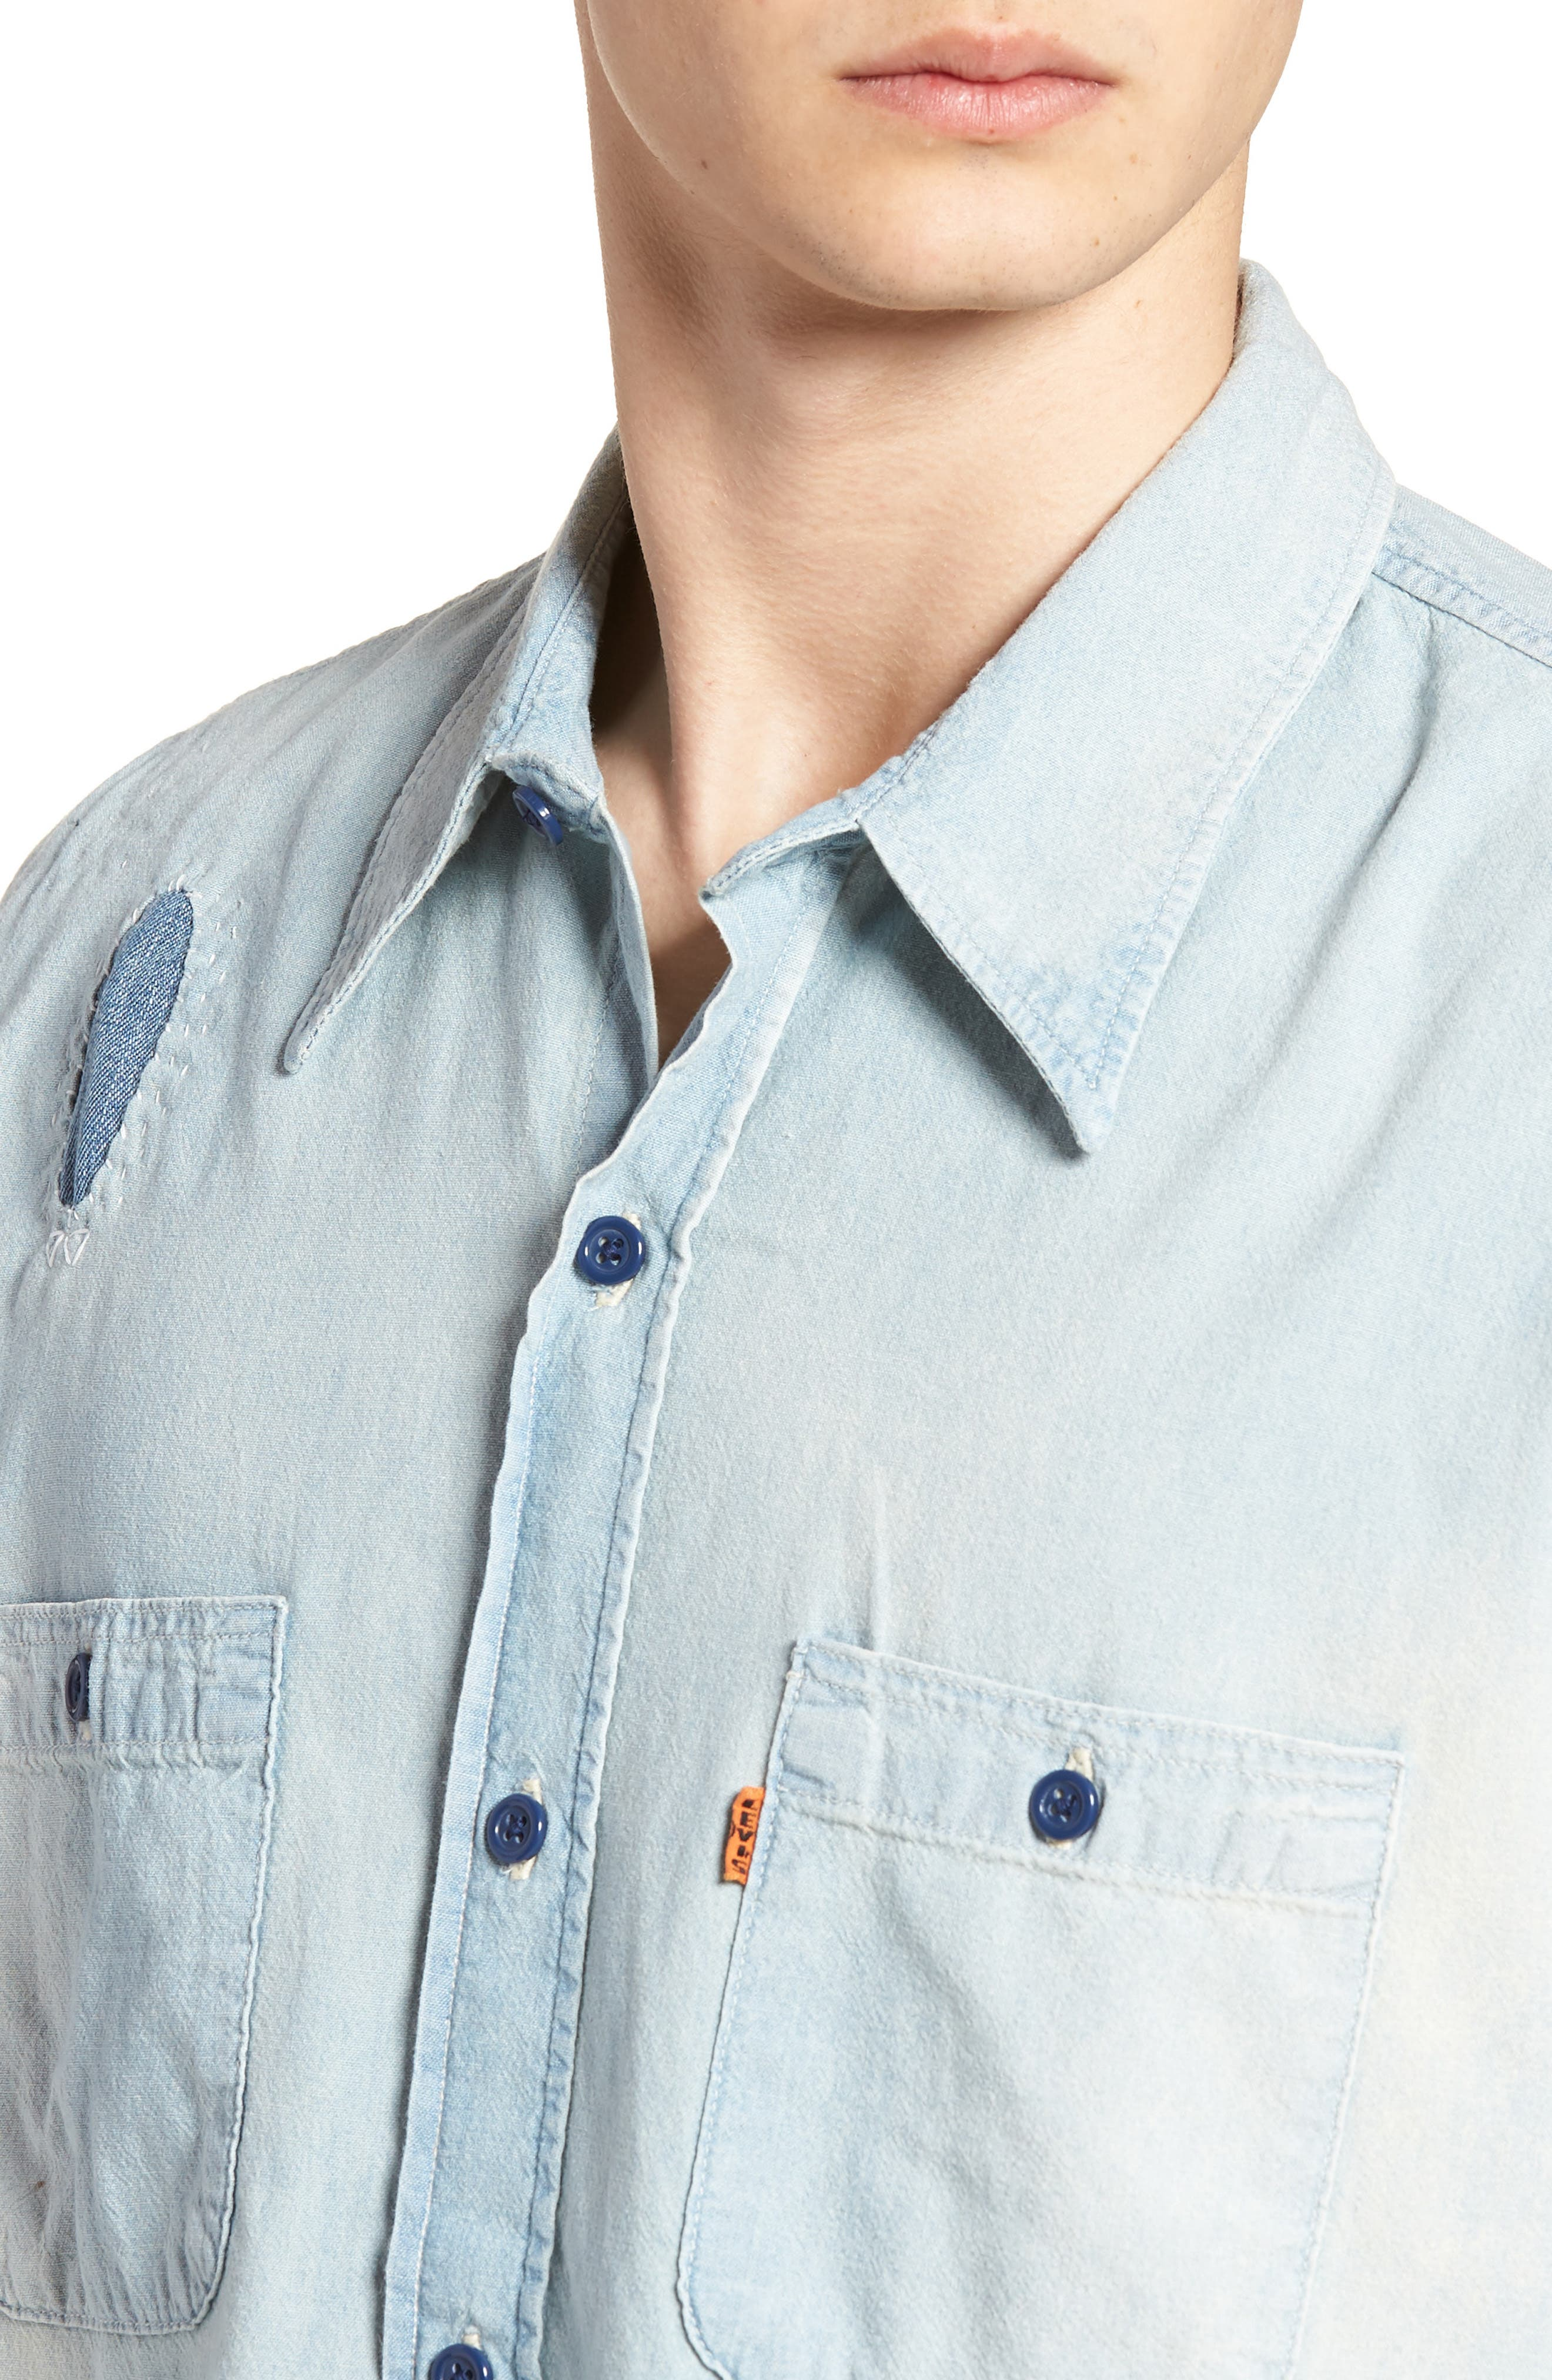 1960s Chambray Worker Shirt,                             Alternate thumbnail 4, color,                             450